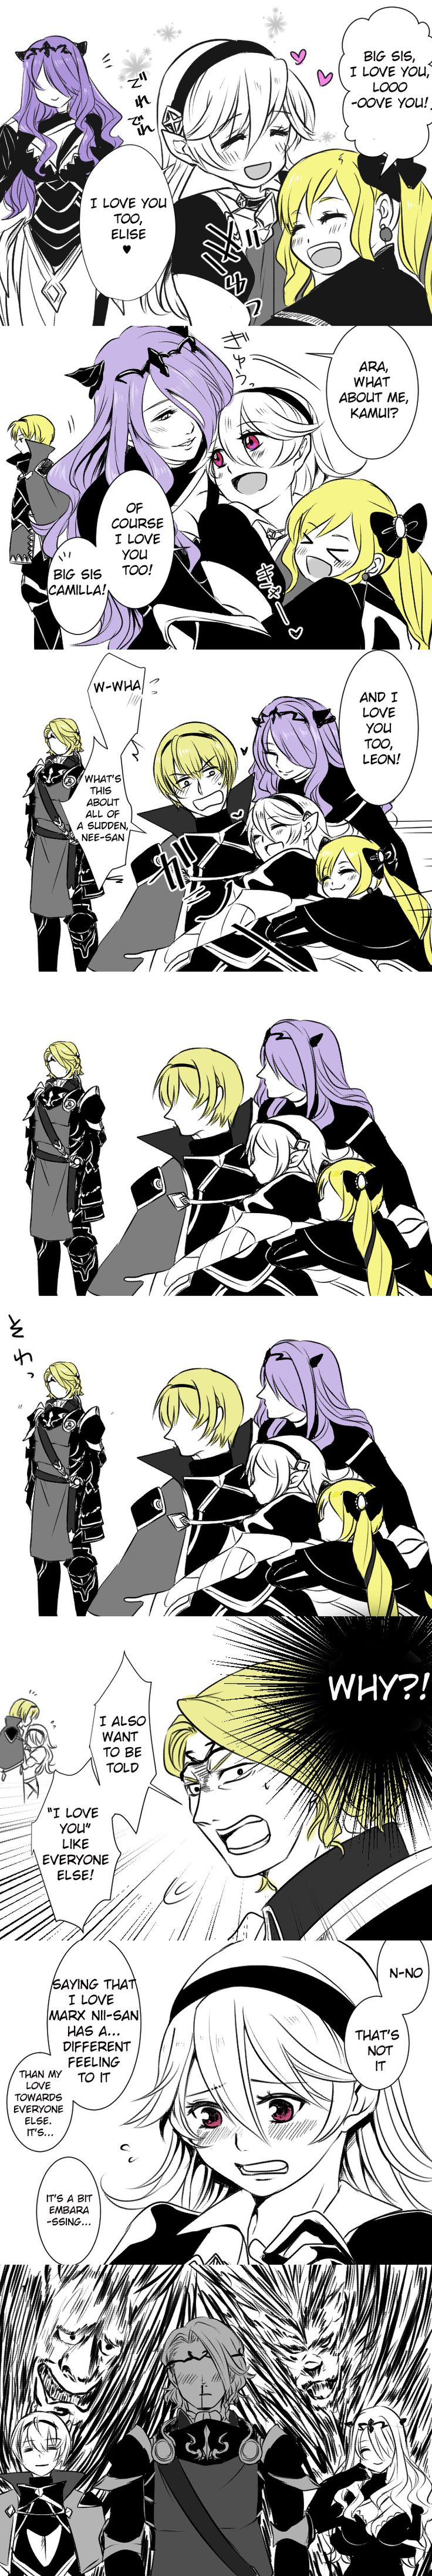 Fire Emblem: If/Fates - Kamui, Leon, Camilla, Elise and Xander